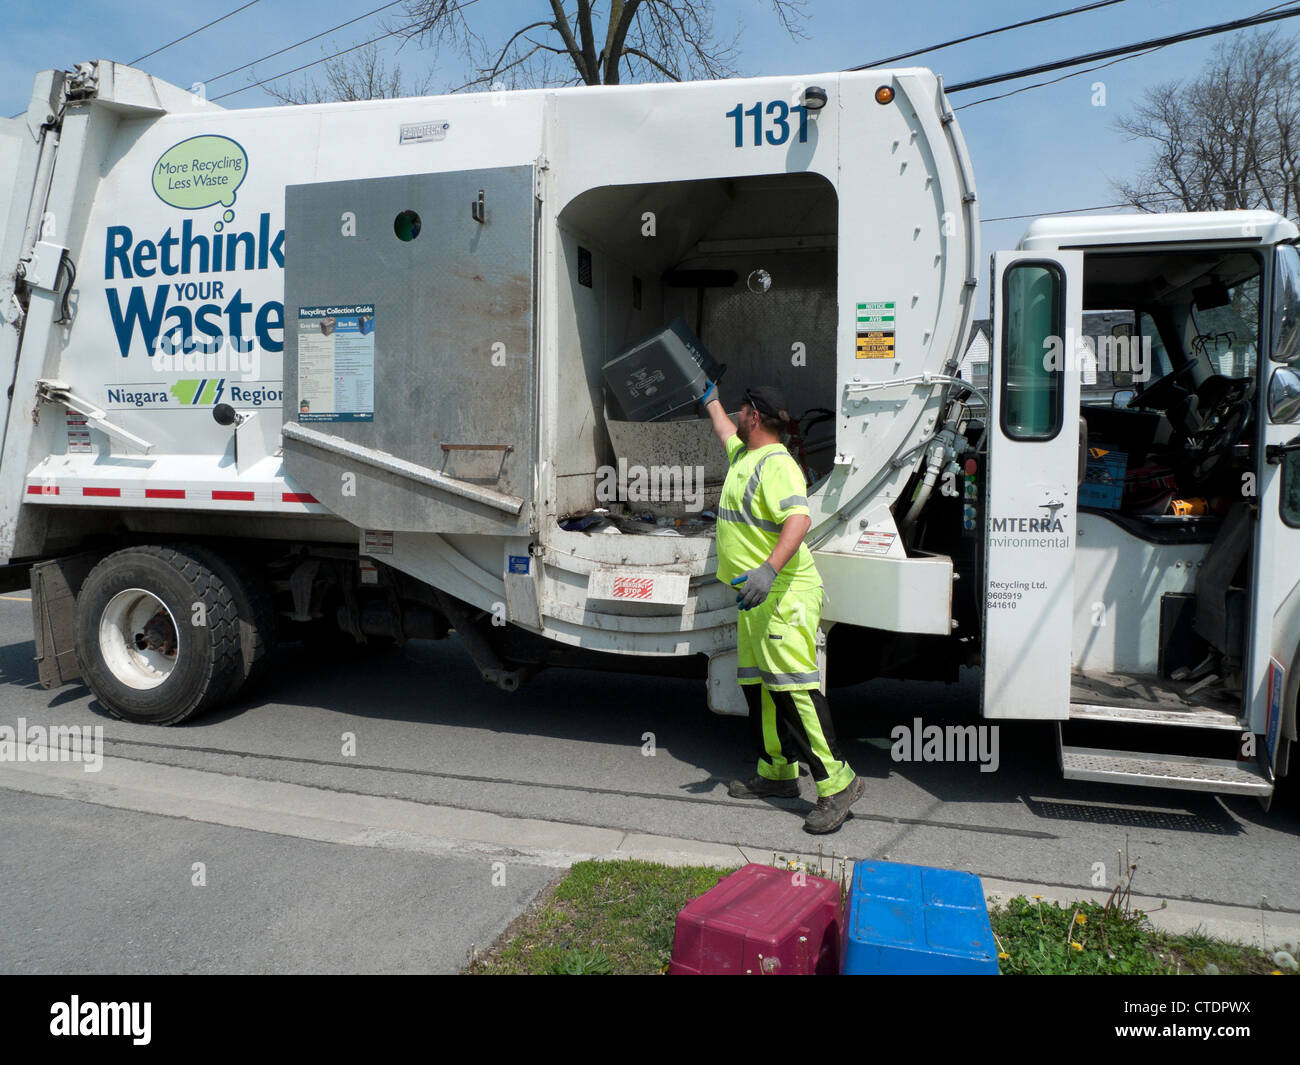 Garbage man loading Rethink Waste truck with household recycled paper Fort Erie Ontario Canada - Stock Image